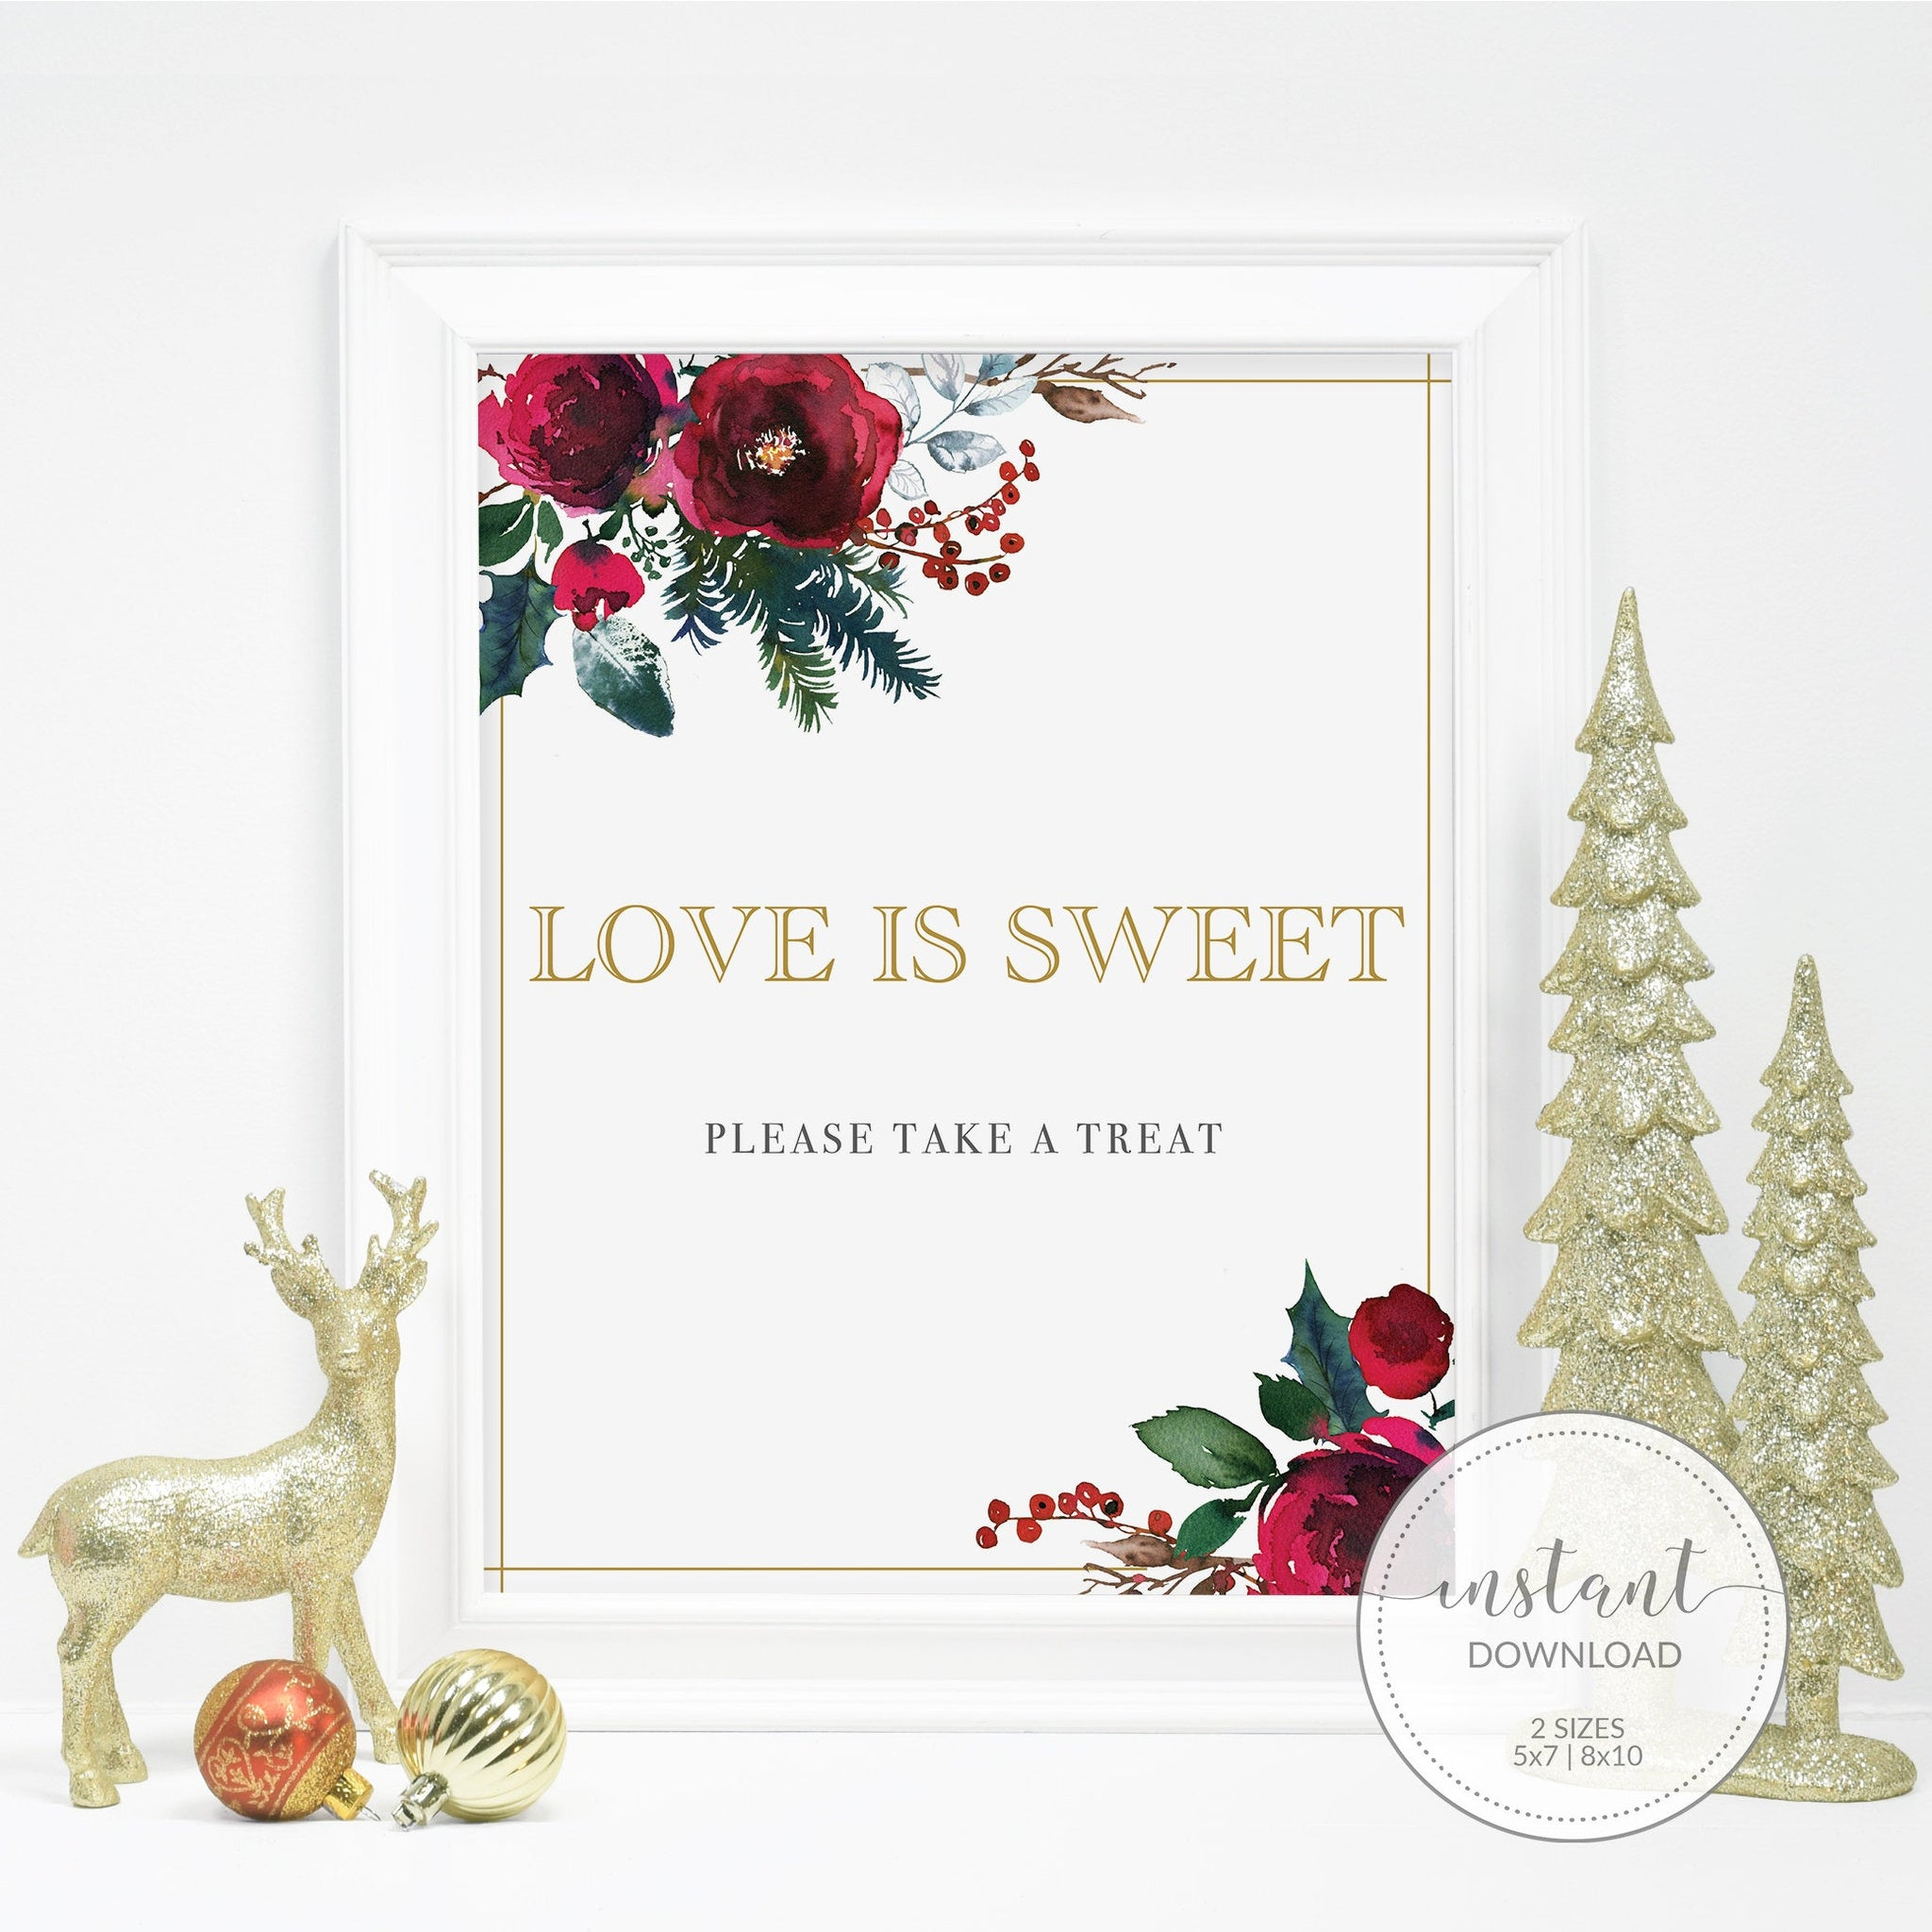 Christmas Bridal Shower Treat Sign Printable, Love is Sweet Dessert Table Sign, Winter Bridal Shower Decorations, INSTANT DOWNLOAD - CG100